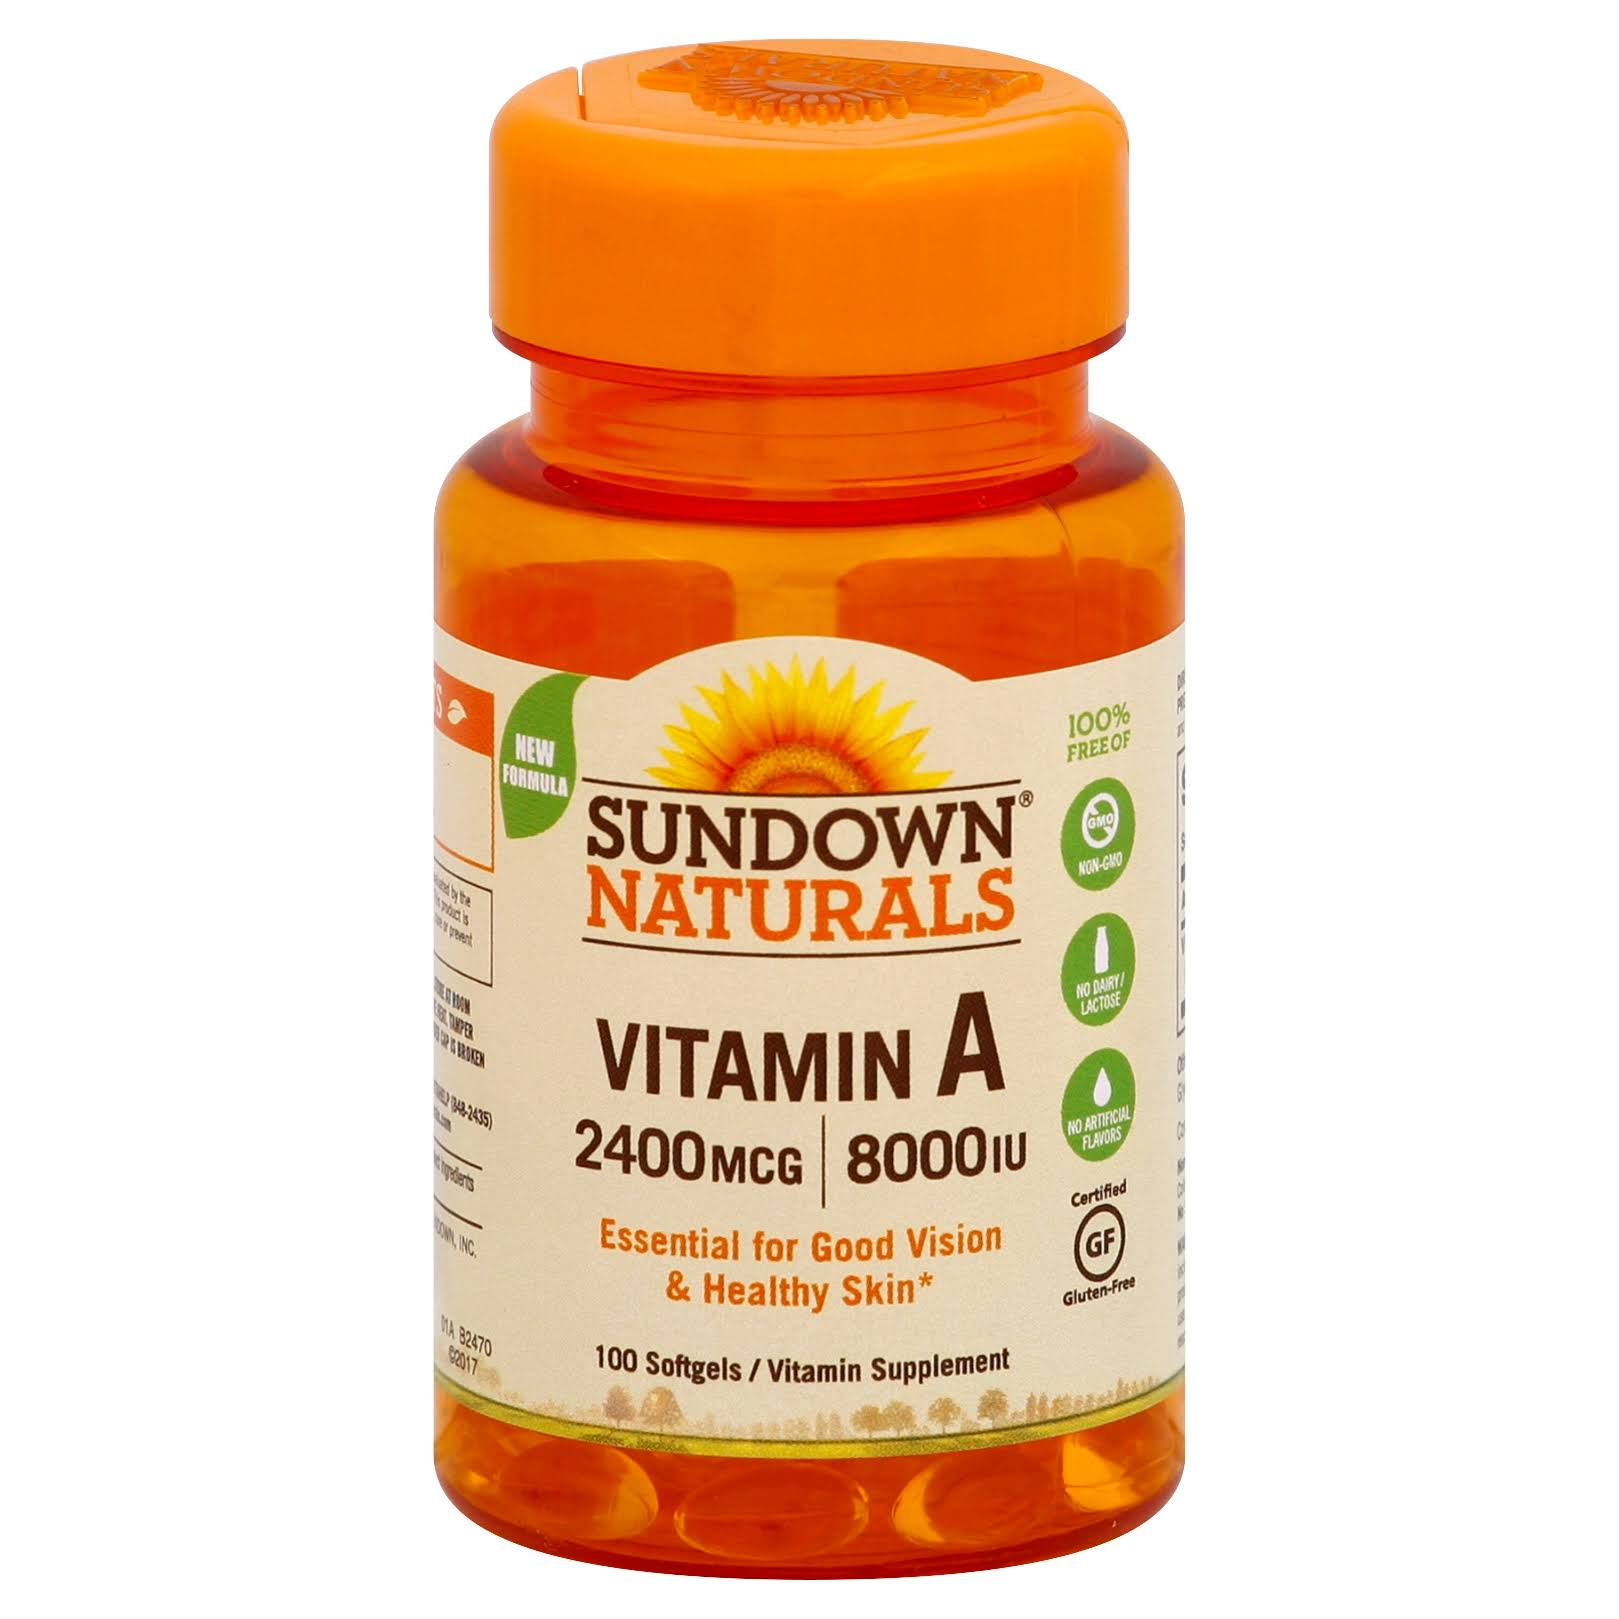 Sundown Naturals A Softgels Vitamin Supplements - 2400mcg, 8000 Iu, 100ct